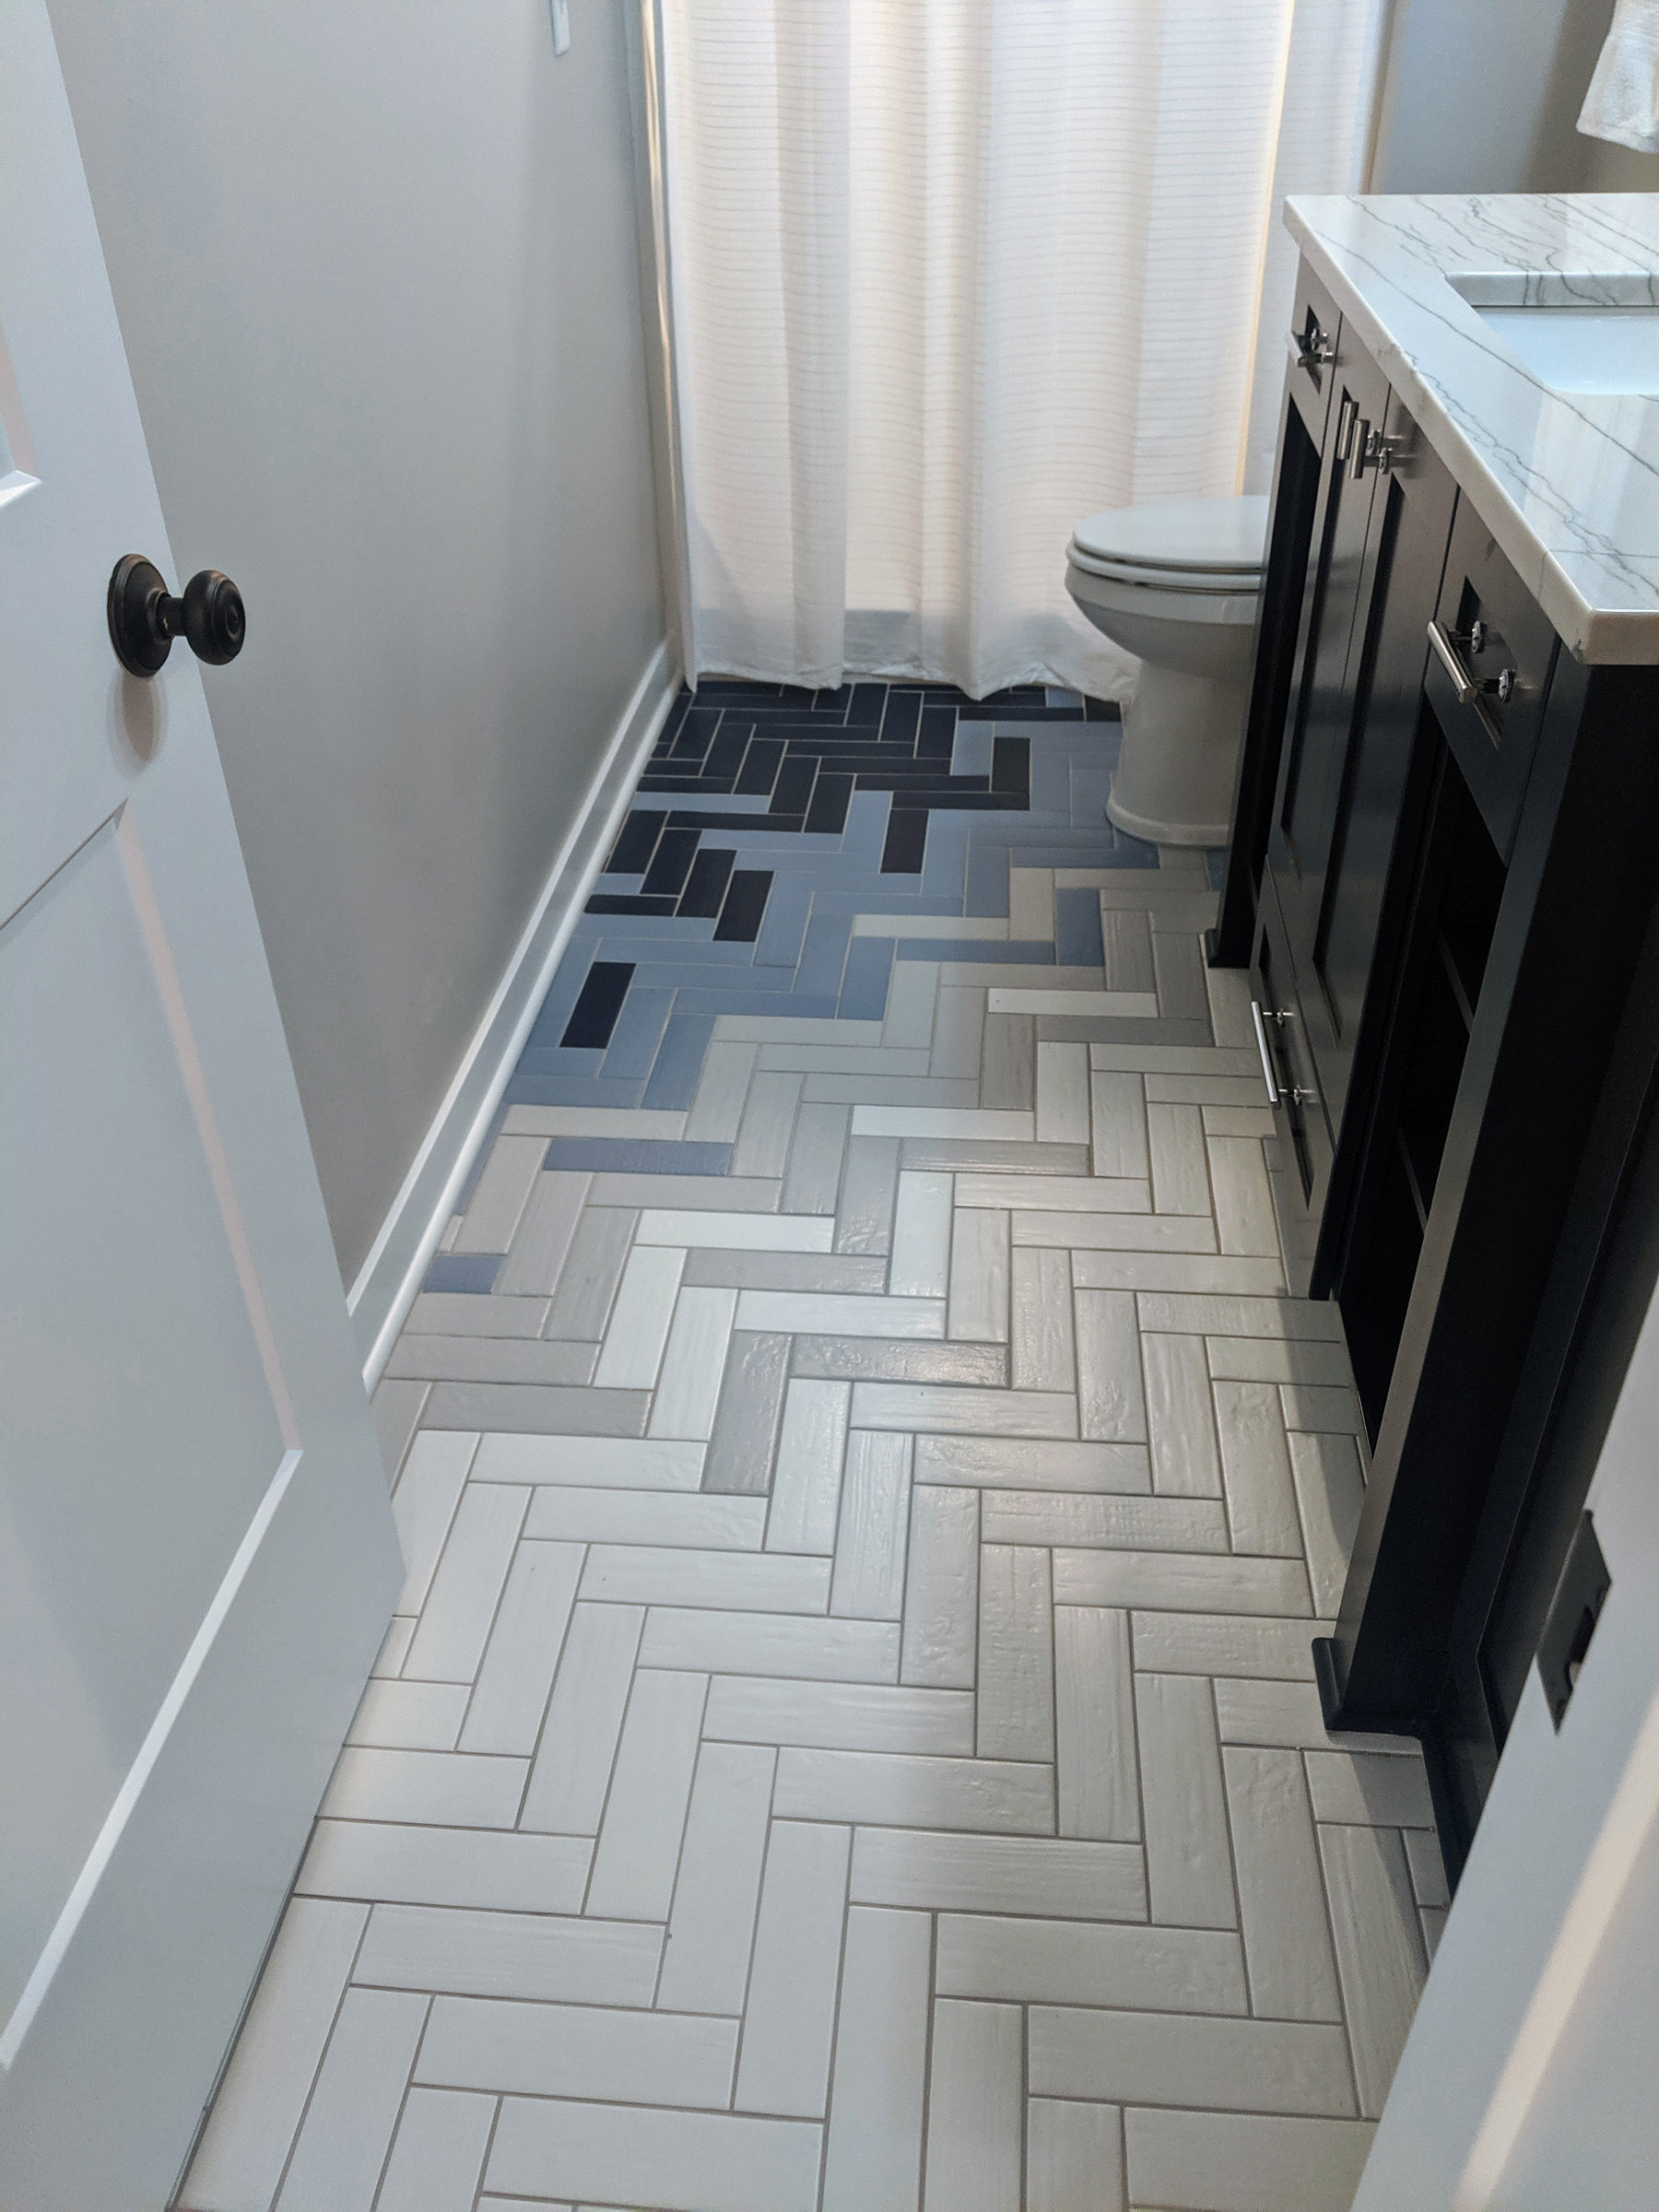 Herringbone tile pattern @ the ¾ bath with bleeding transfer of 4-colored tiles, brings a unique style to an otherwise boring bathroom tile